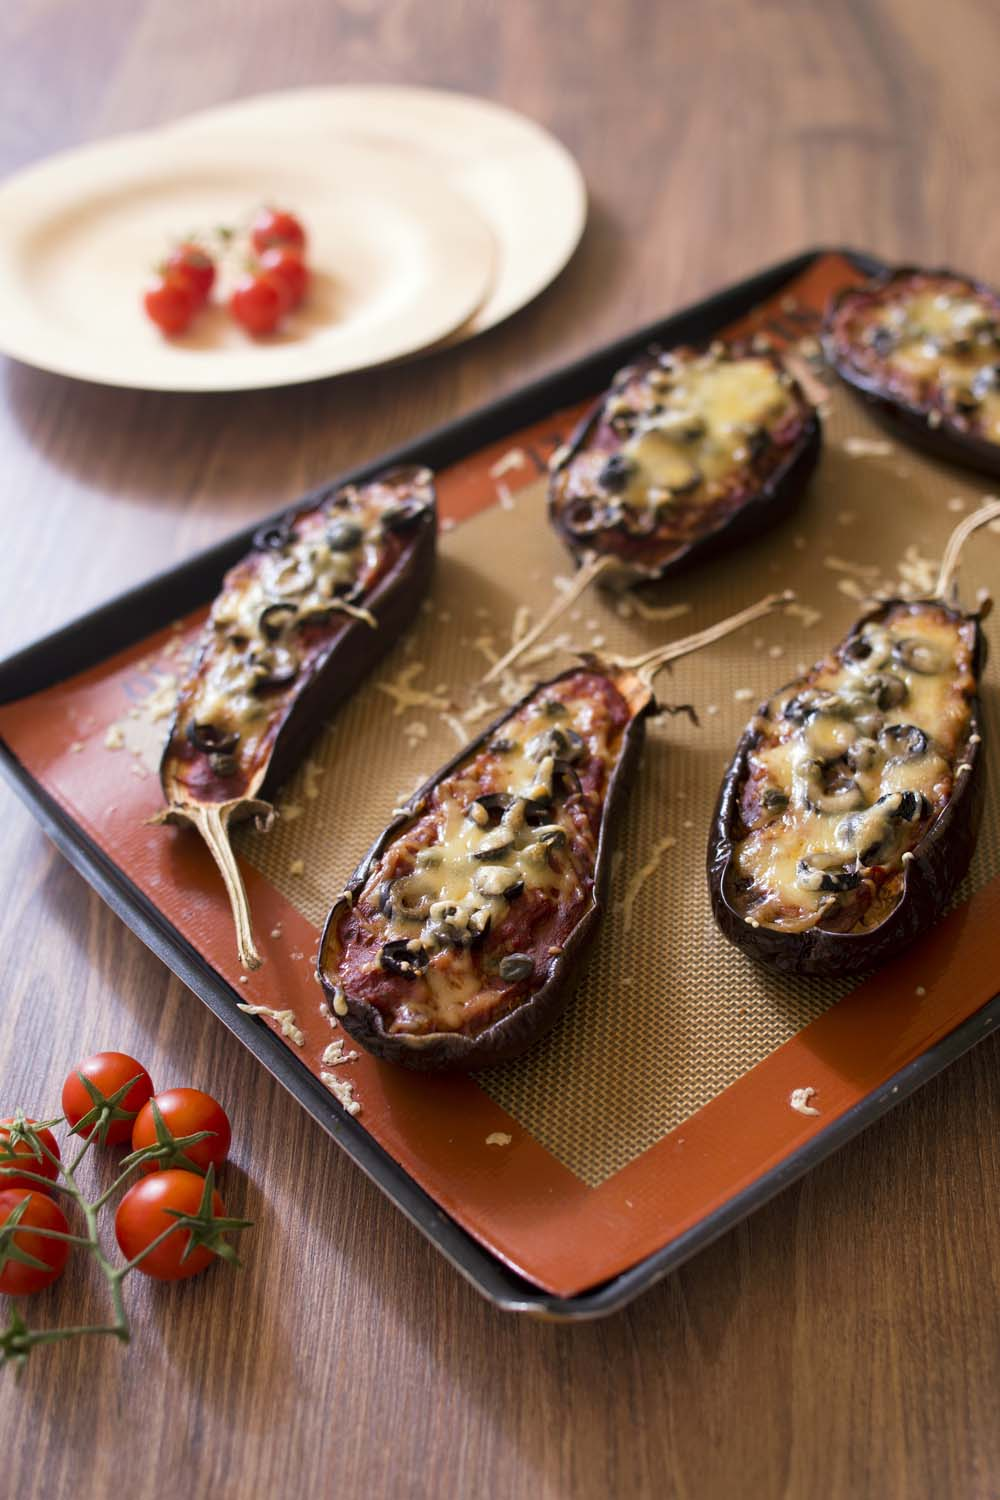 aubergines pizza aux tomates et c pres recettes de cuisine biod lices. Black Bedroom Furniture Sets. Home Design Ideas